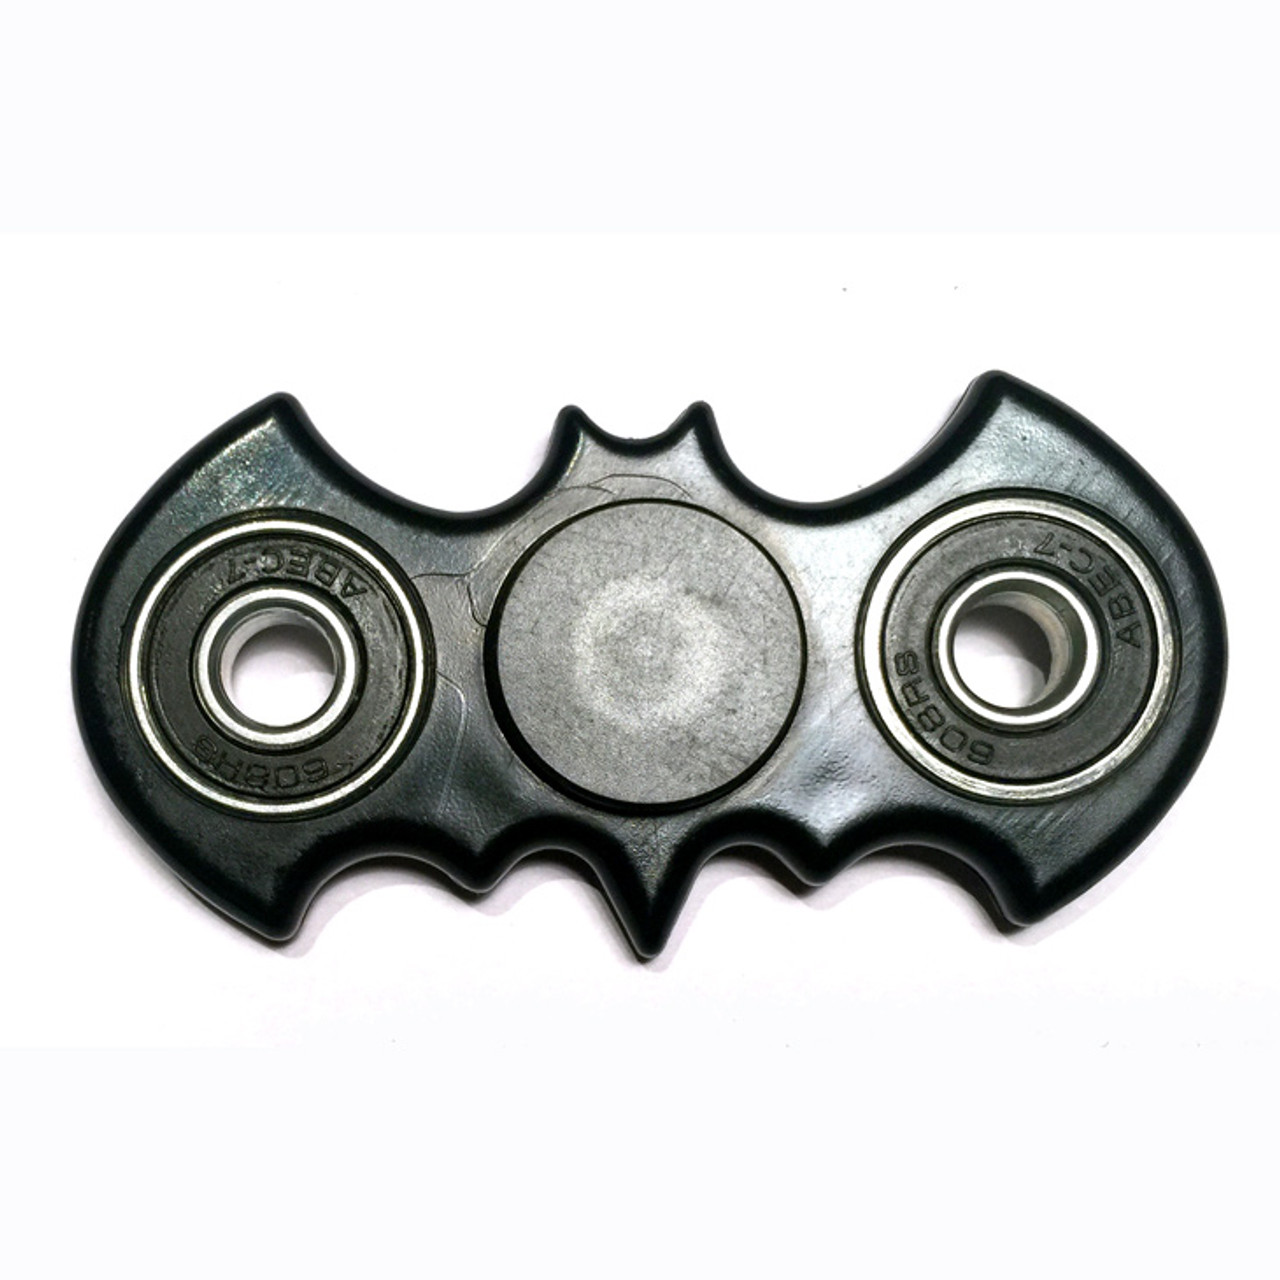 Black Batman Fidget Spinner With Metal Ball Bearings